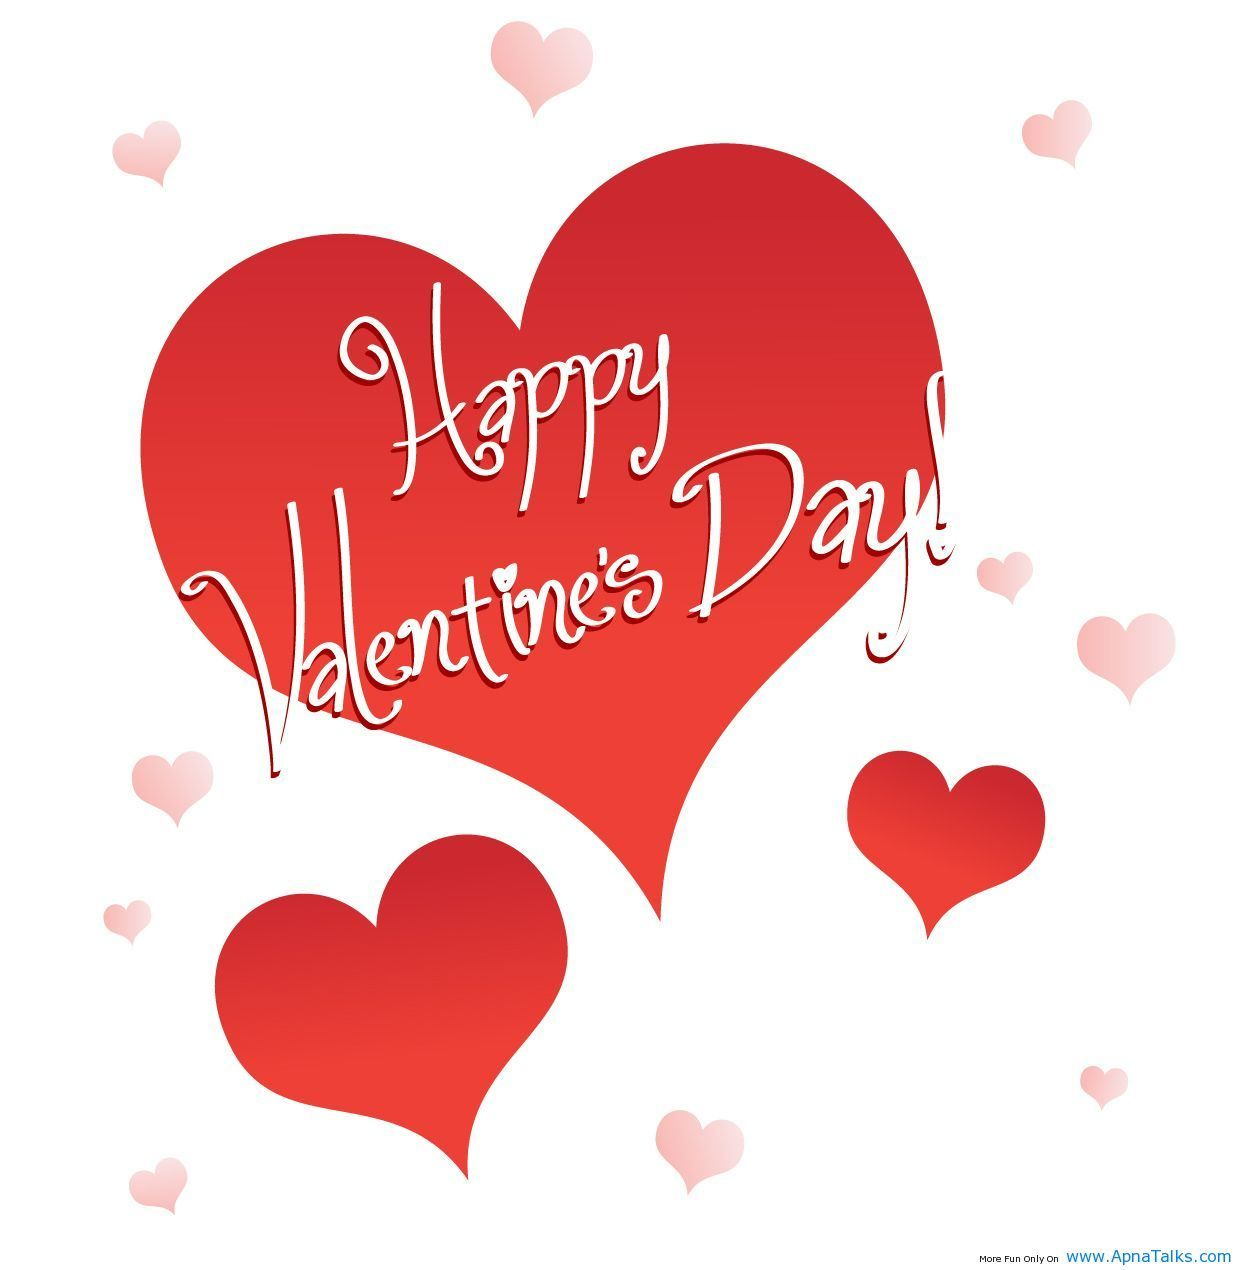 Valentine Day Quotes About Family. Romantic Valentine Day.